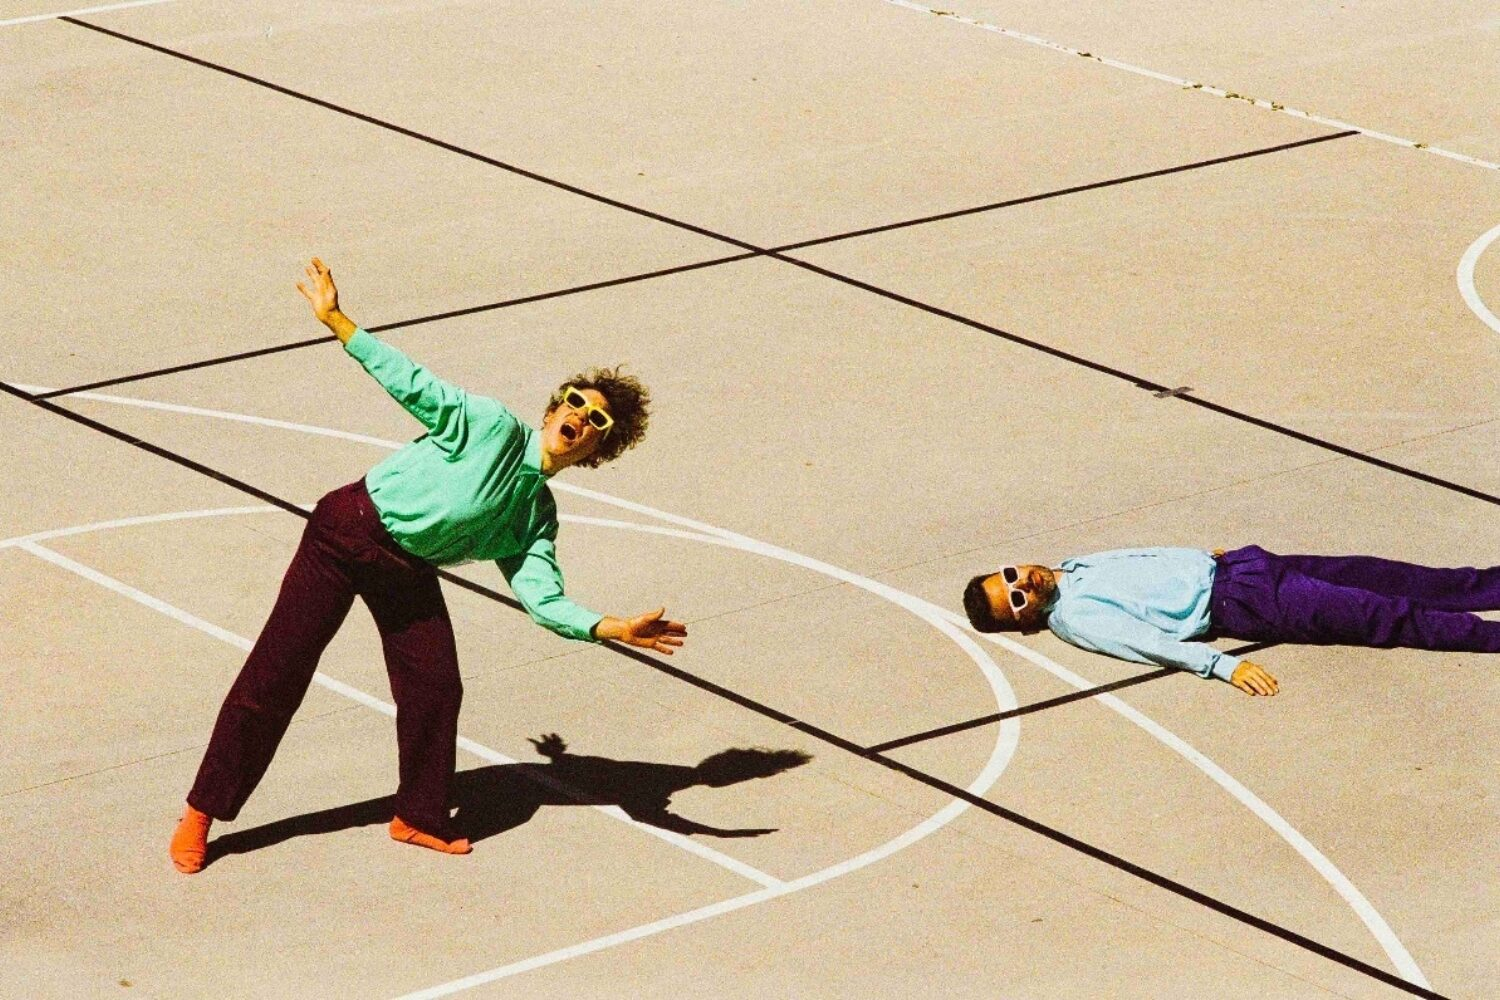 Tune-Yards announce new album 'sketchy'